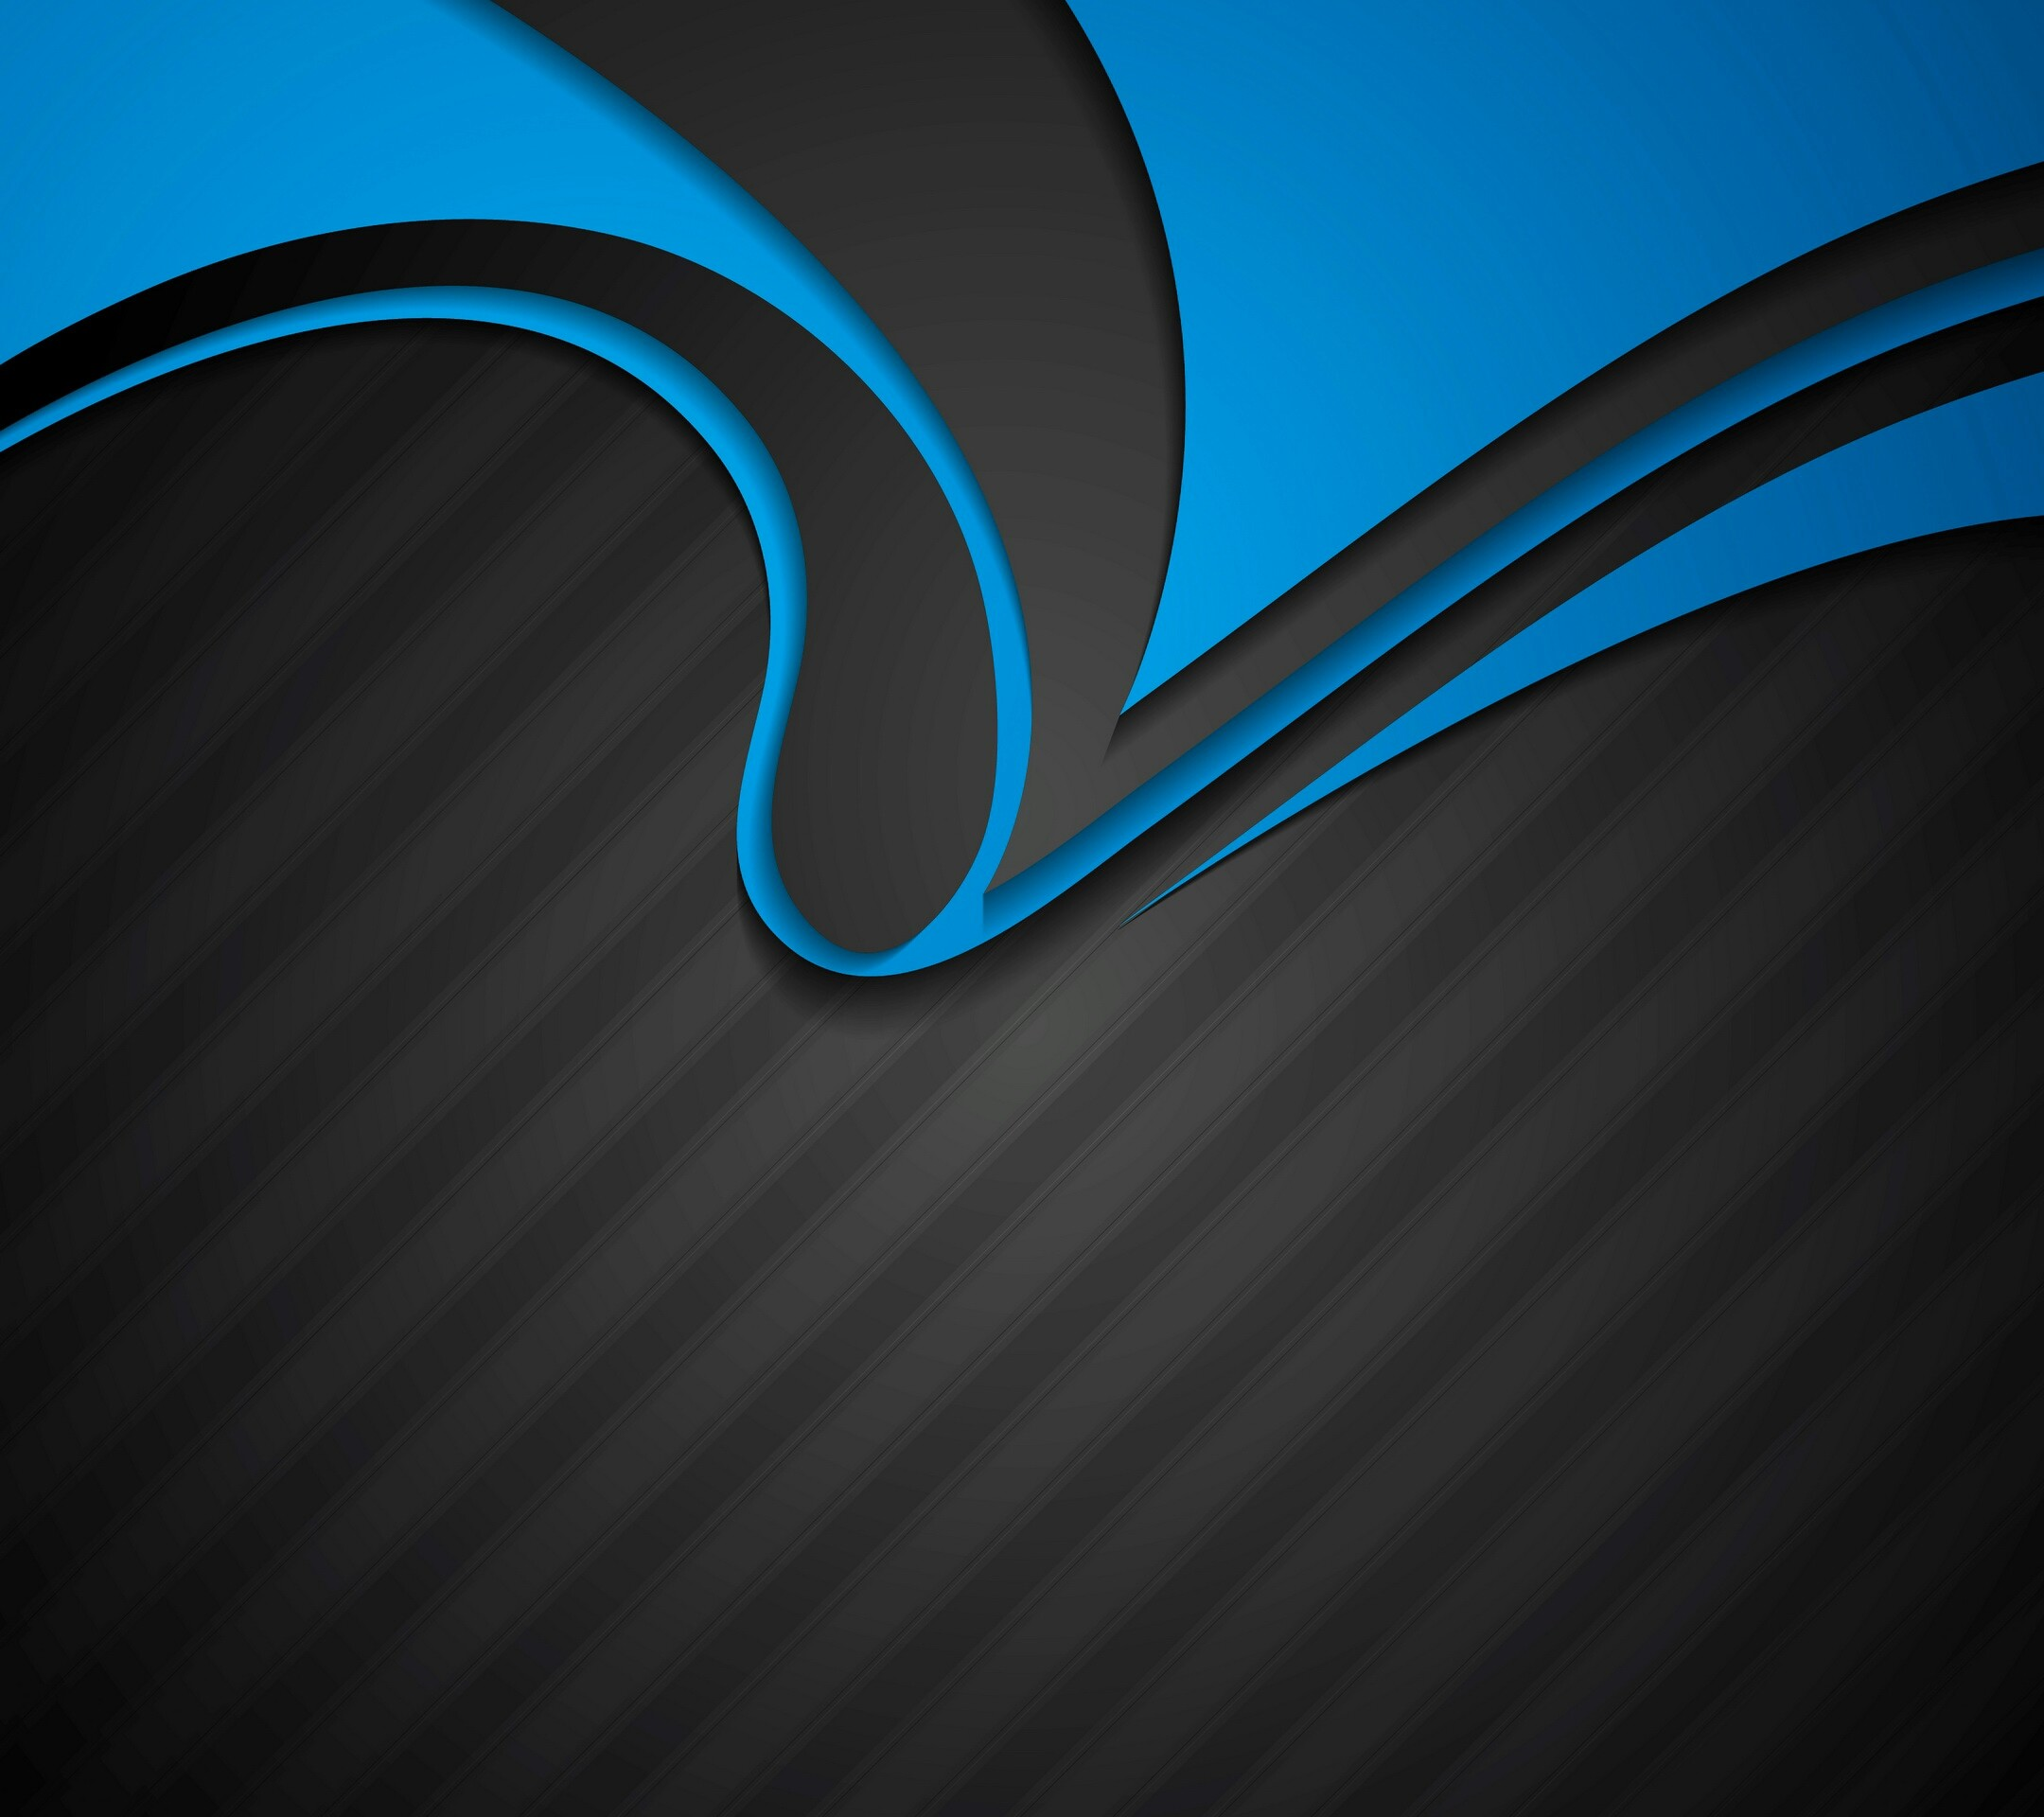 Blue Abstract Wallpaper (65+ Images